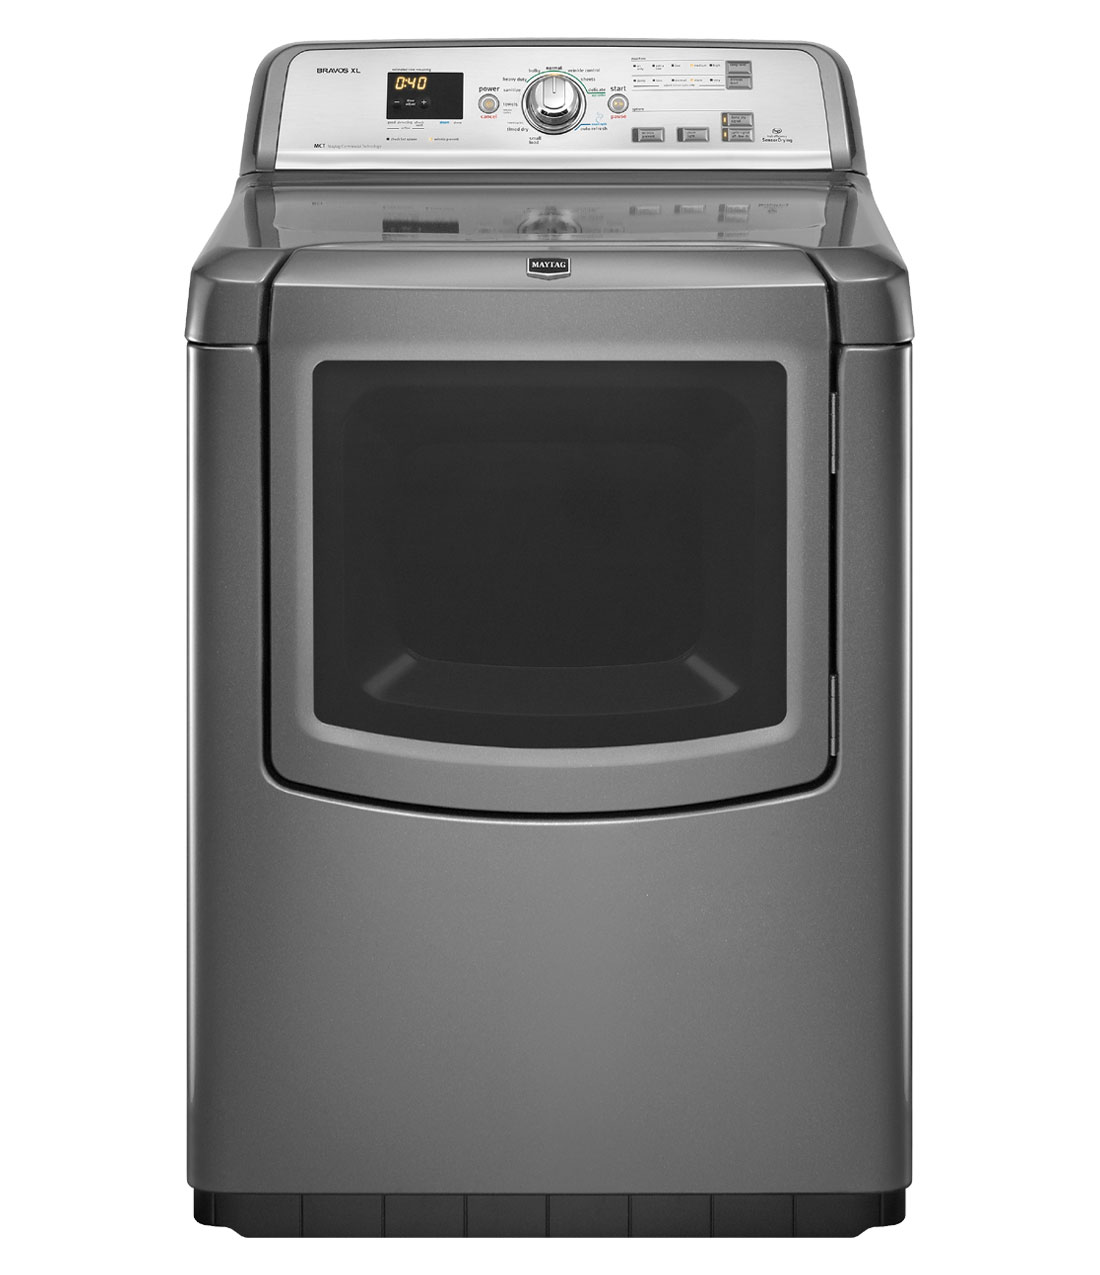 Review of Maytag Bravos XL 7.3 cu. ft. Electric Dryer with Steam